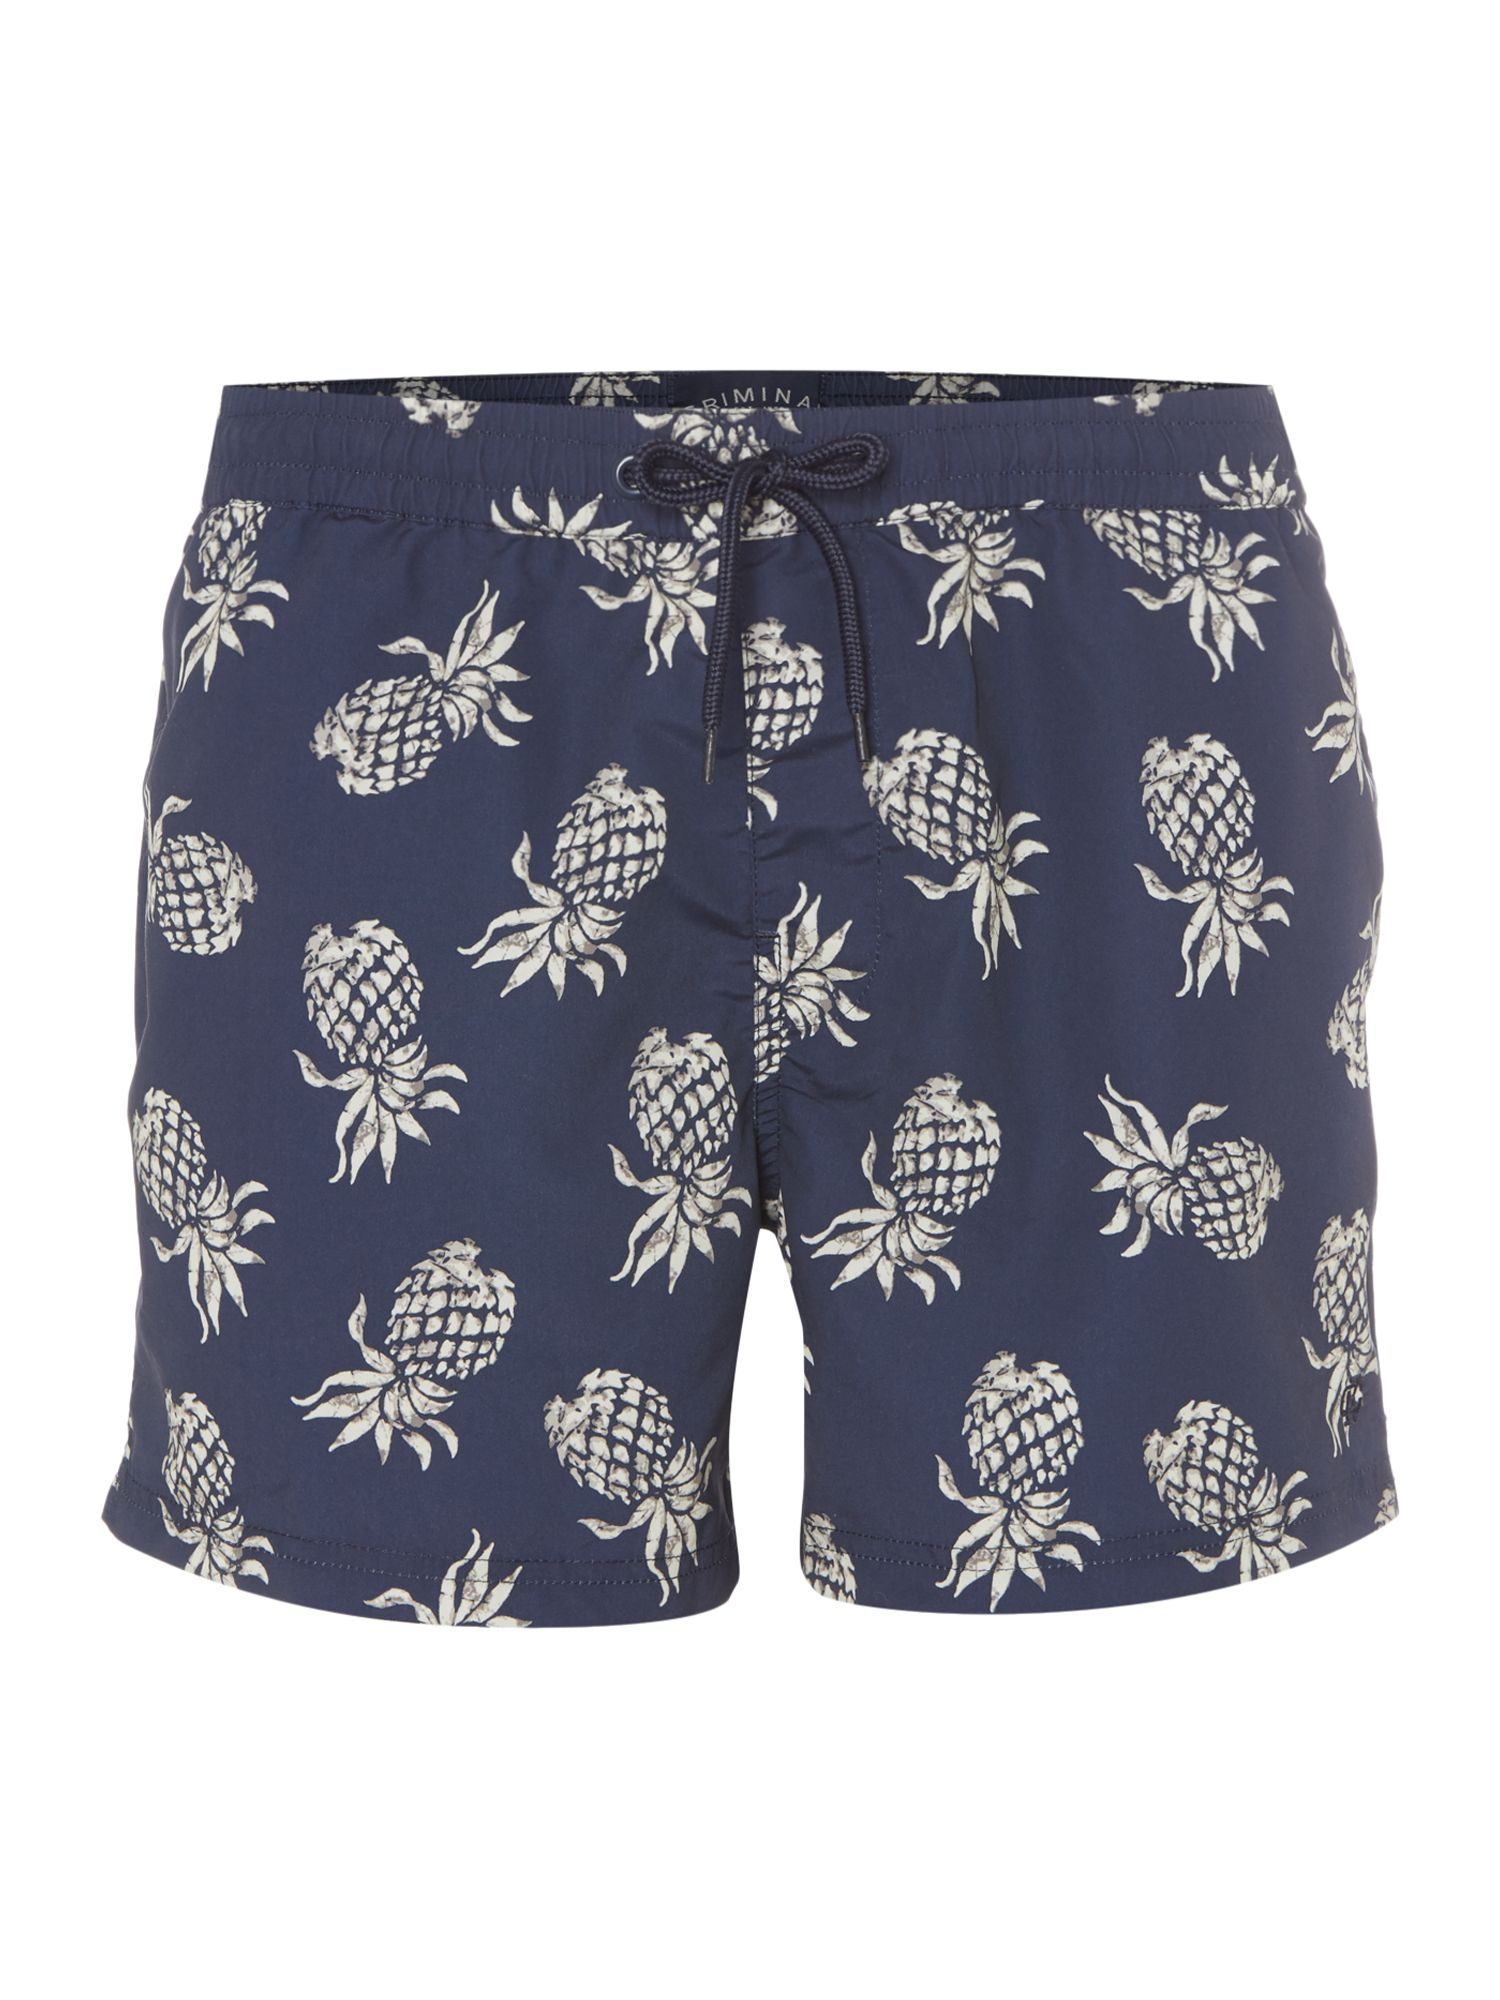 Men's Criminal Short Spec Swim Short With Pineapple Print, Blue